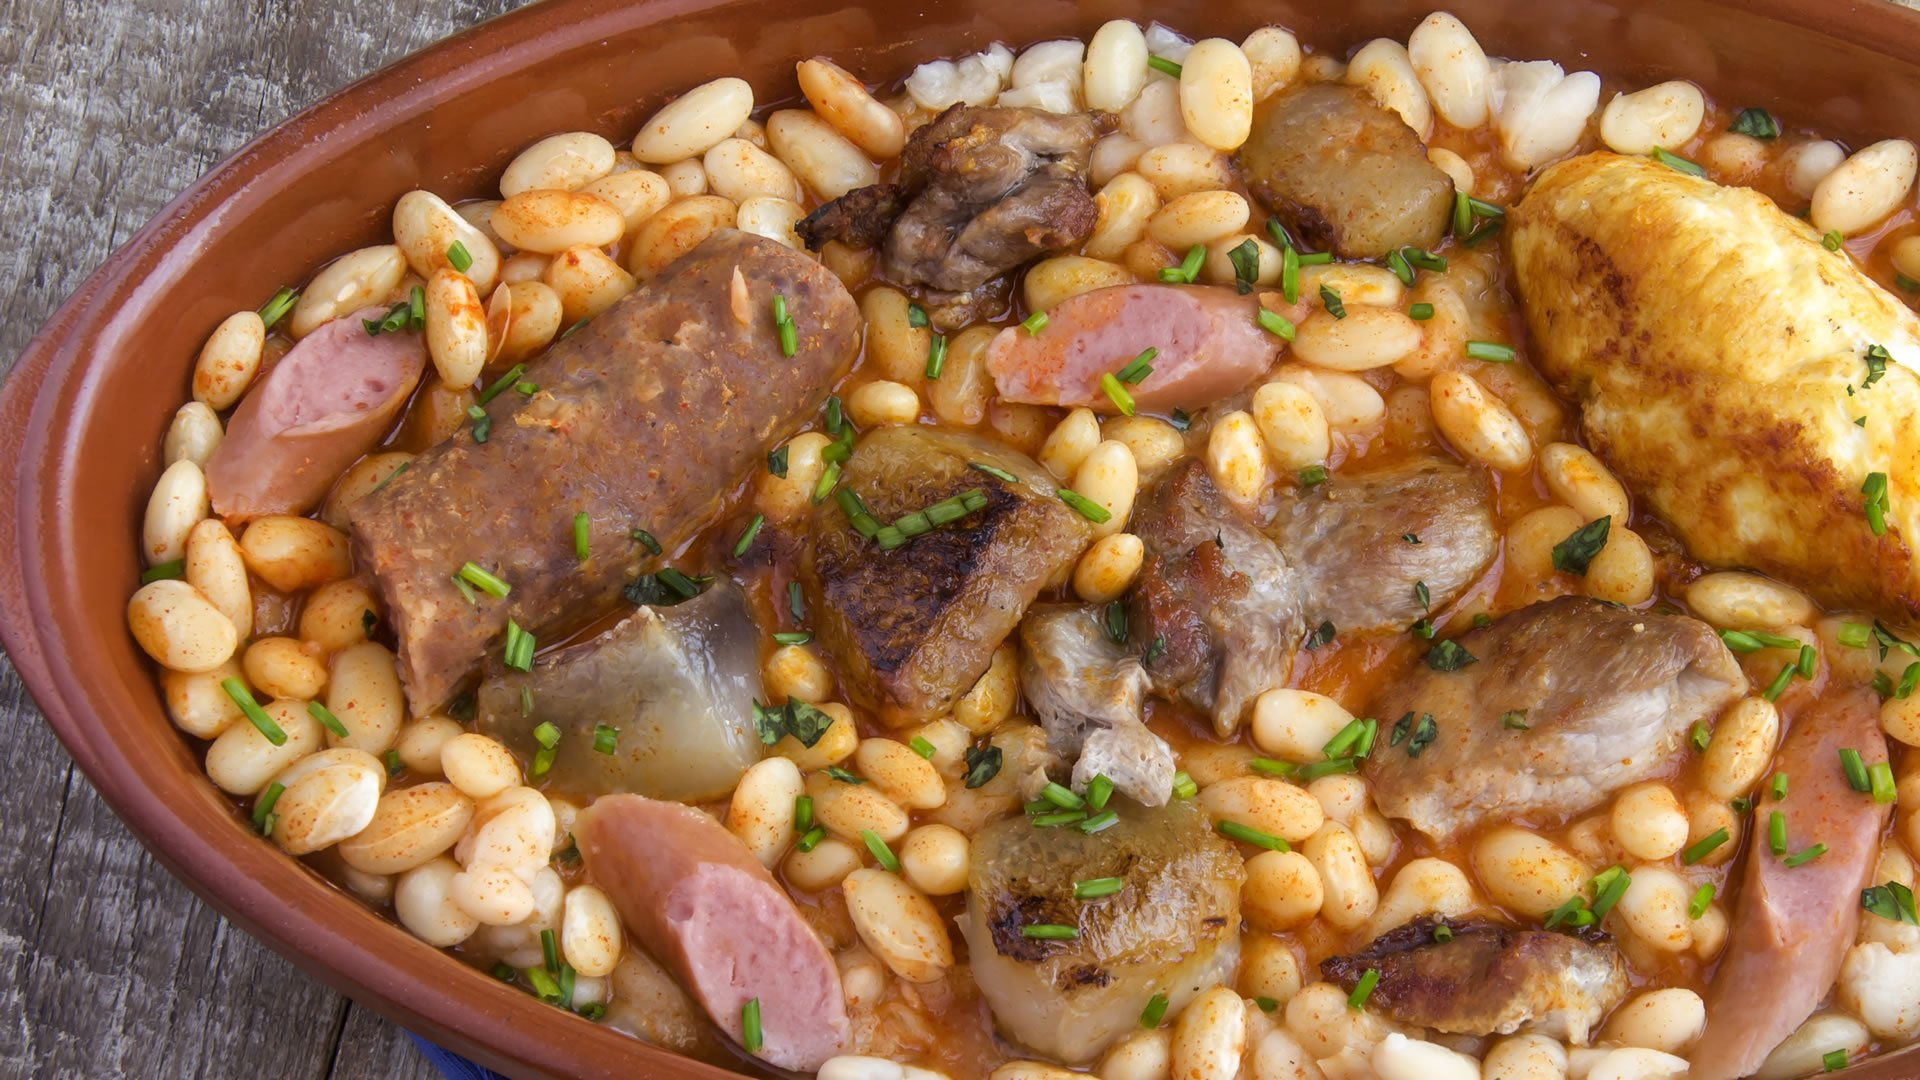 Cassoulet for Comida de francia